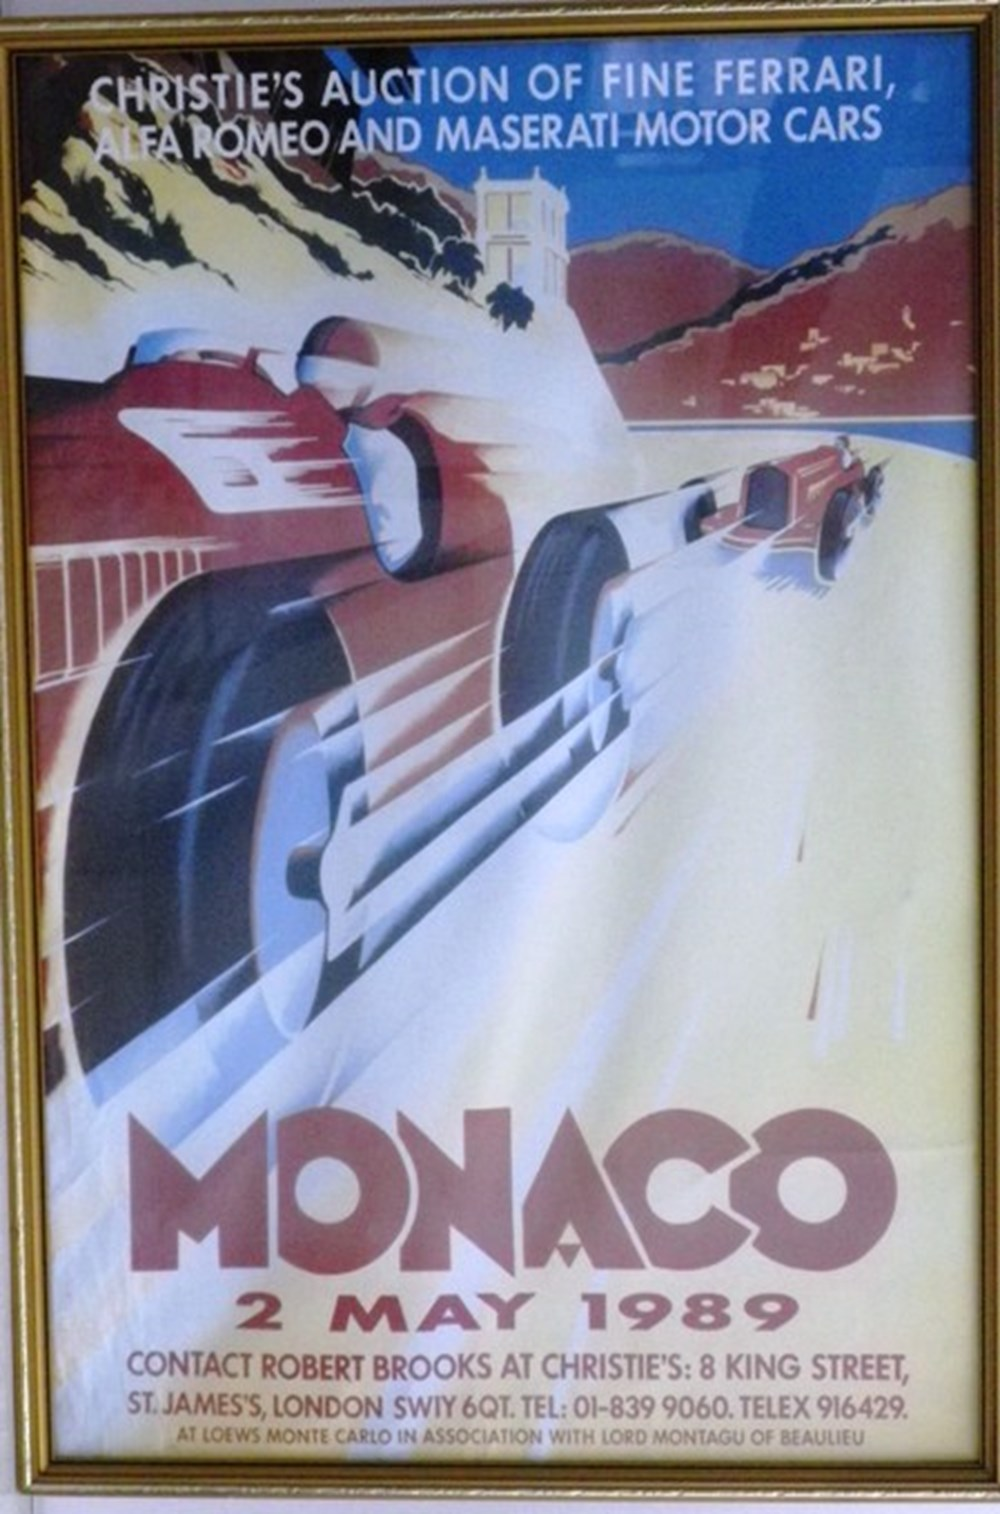 Lot 24 - Christie's Monaco auction posters